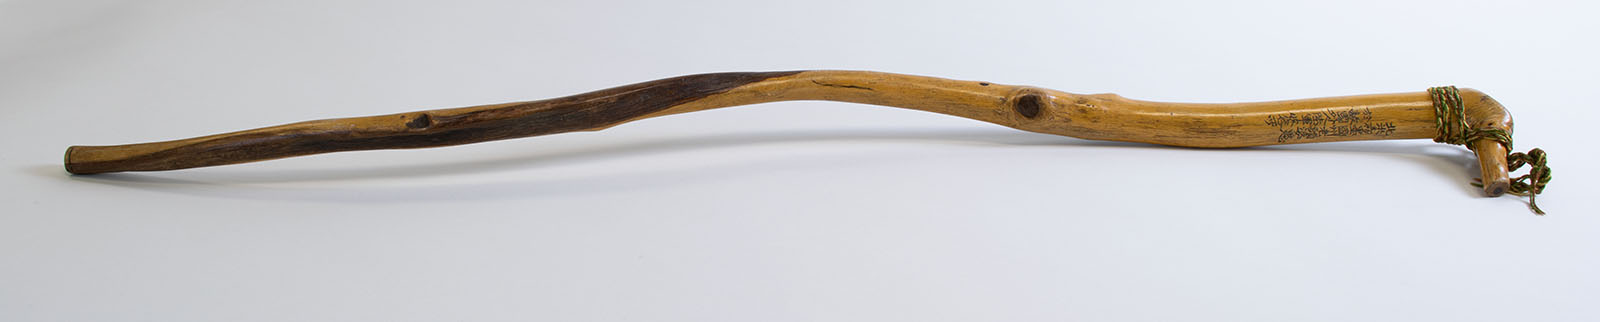 Cane from Lordsburg, NM Internment Camp ca. 1940s